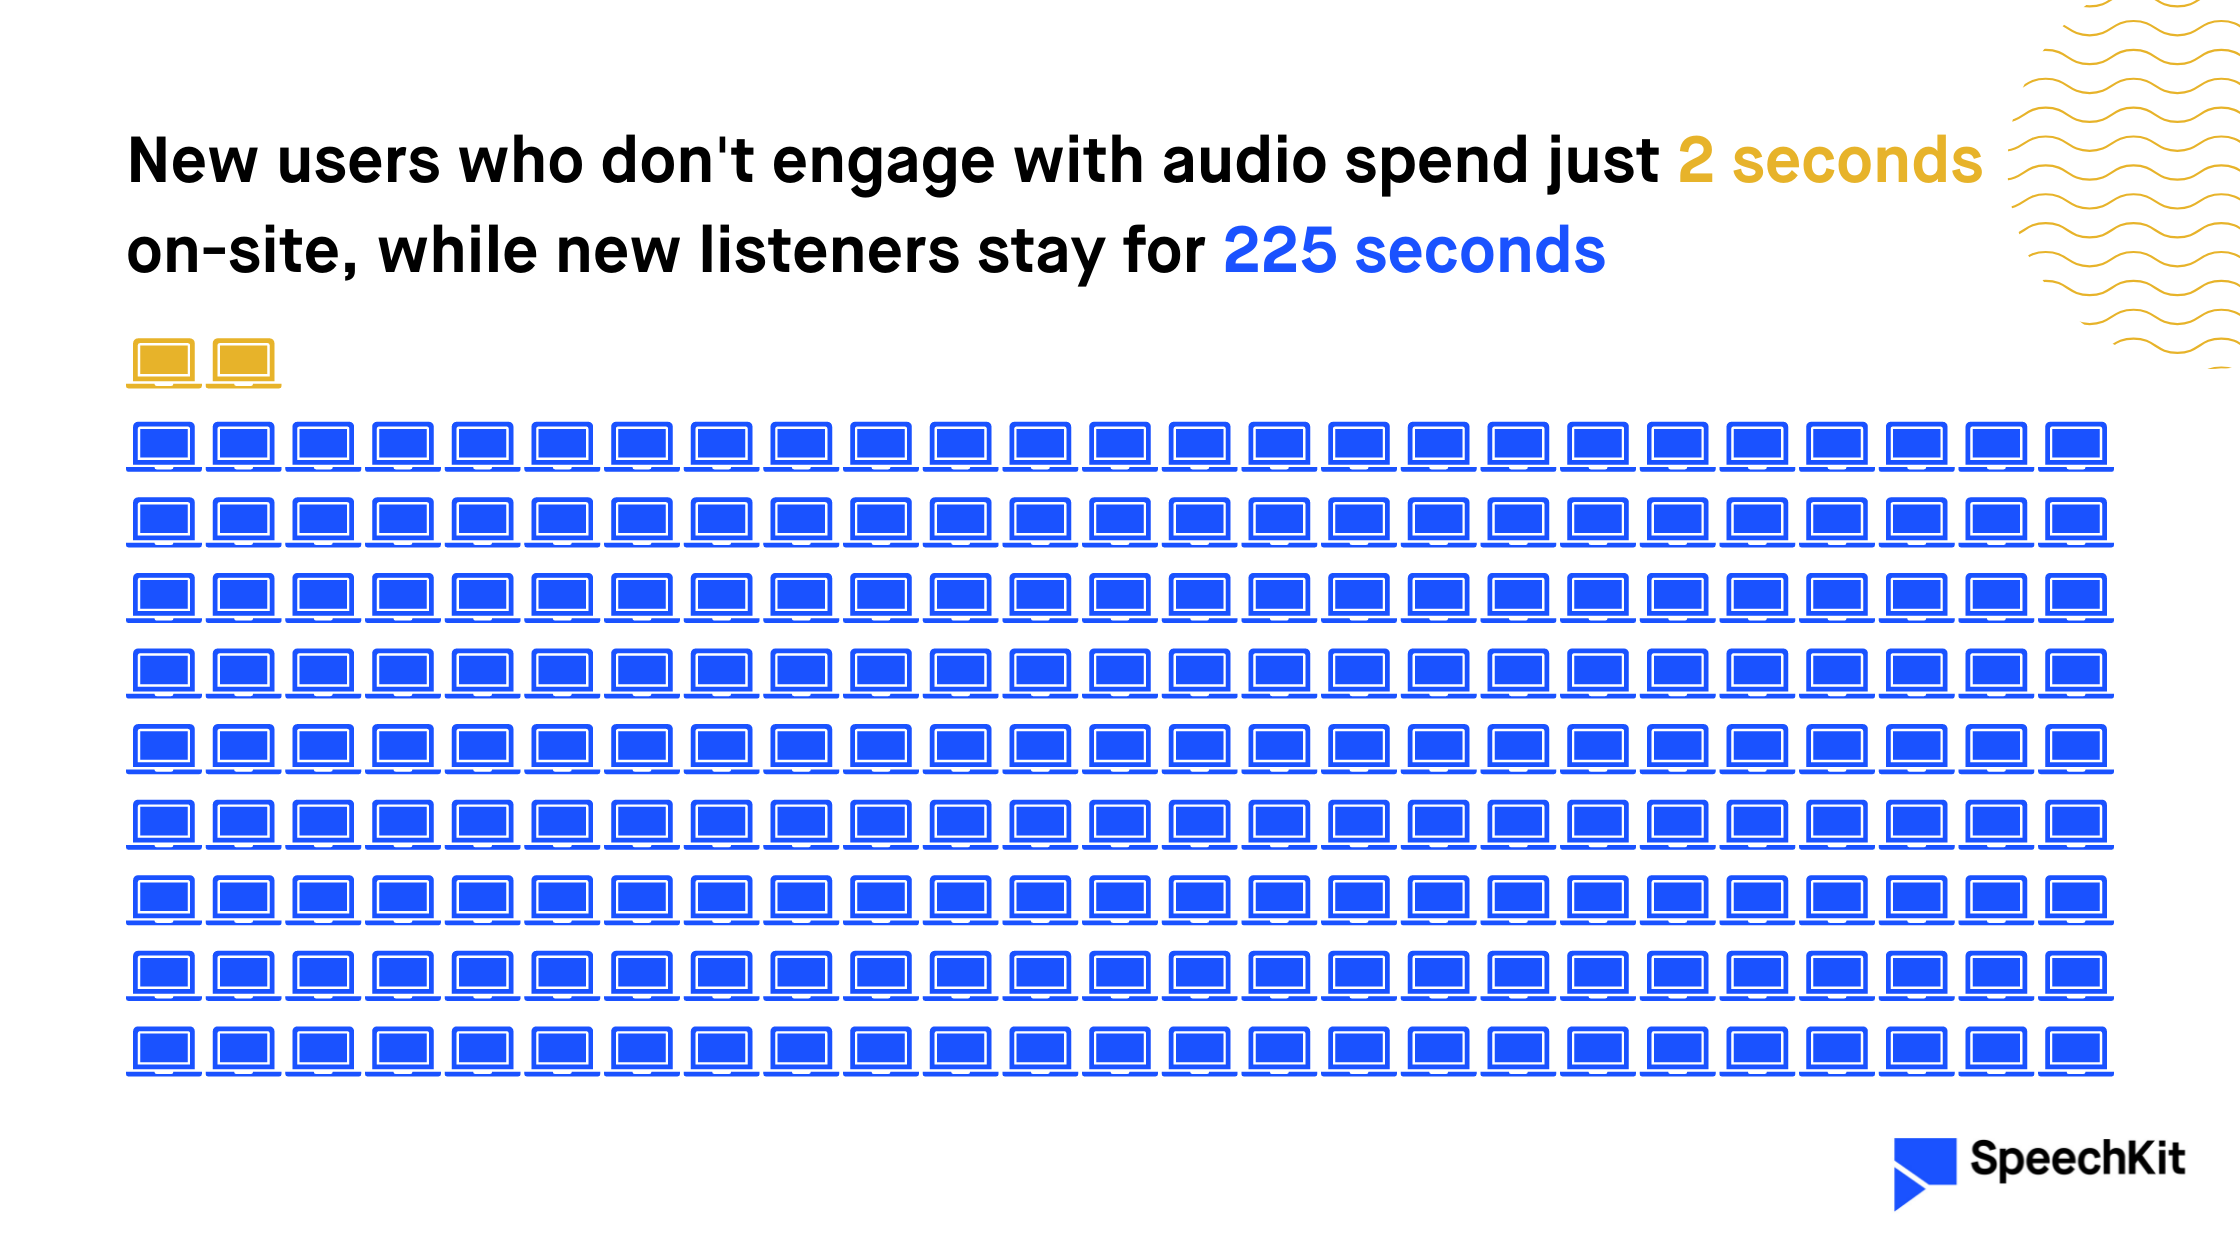 New users who don't engage with audio spend just 2 seconds on-site, while new listeners stay for 225 seconds (SpeechKit) — visualized